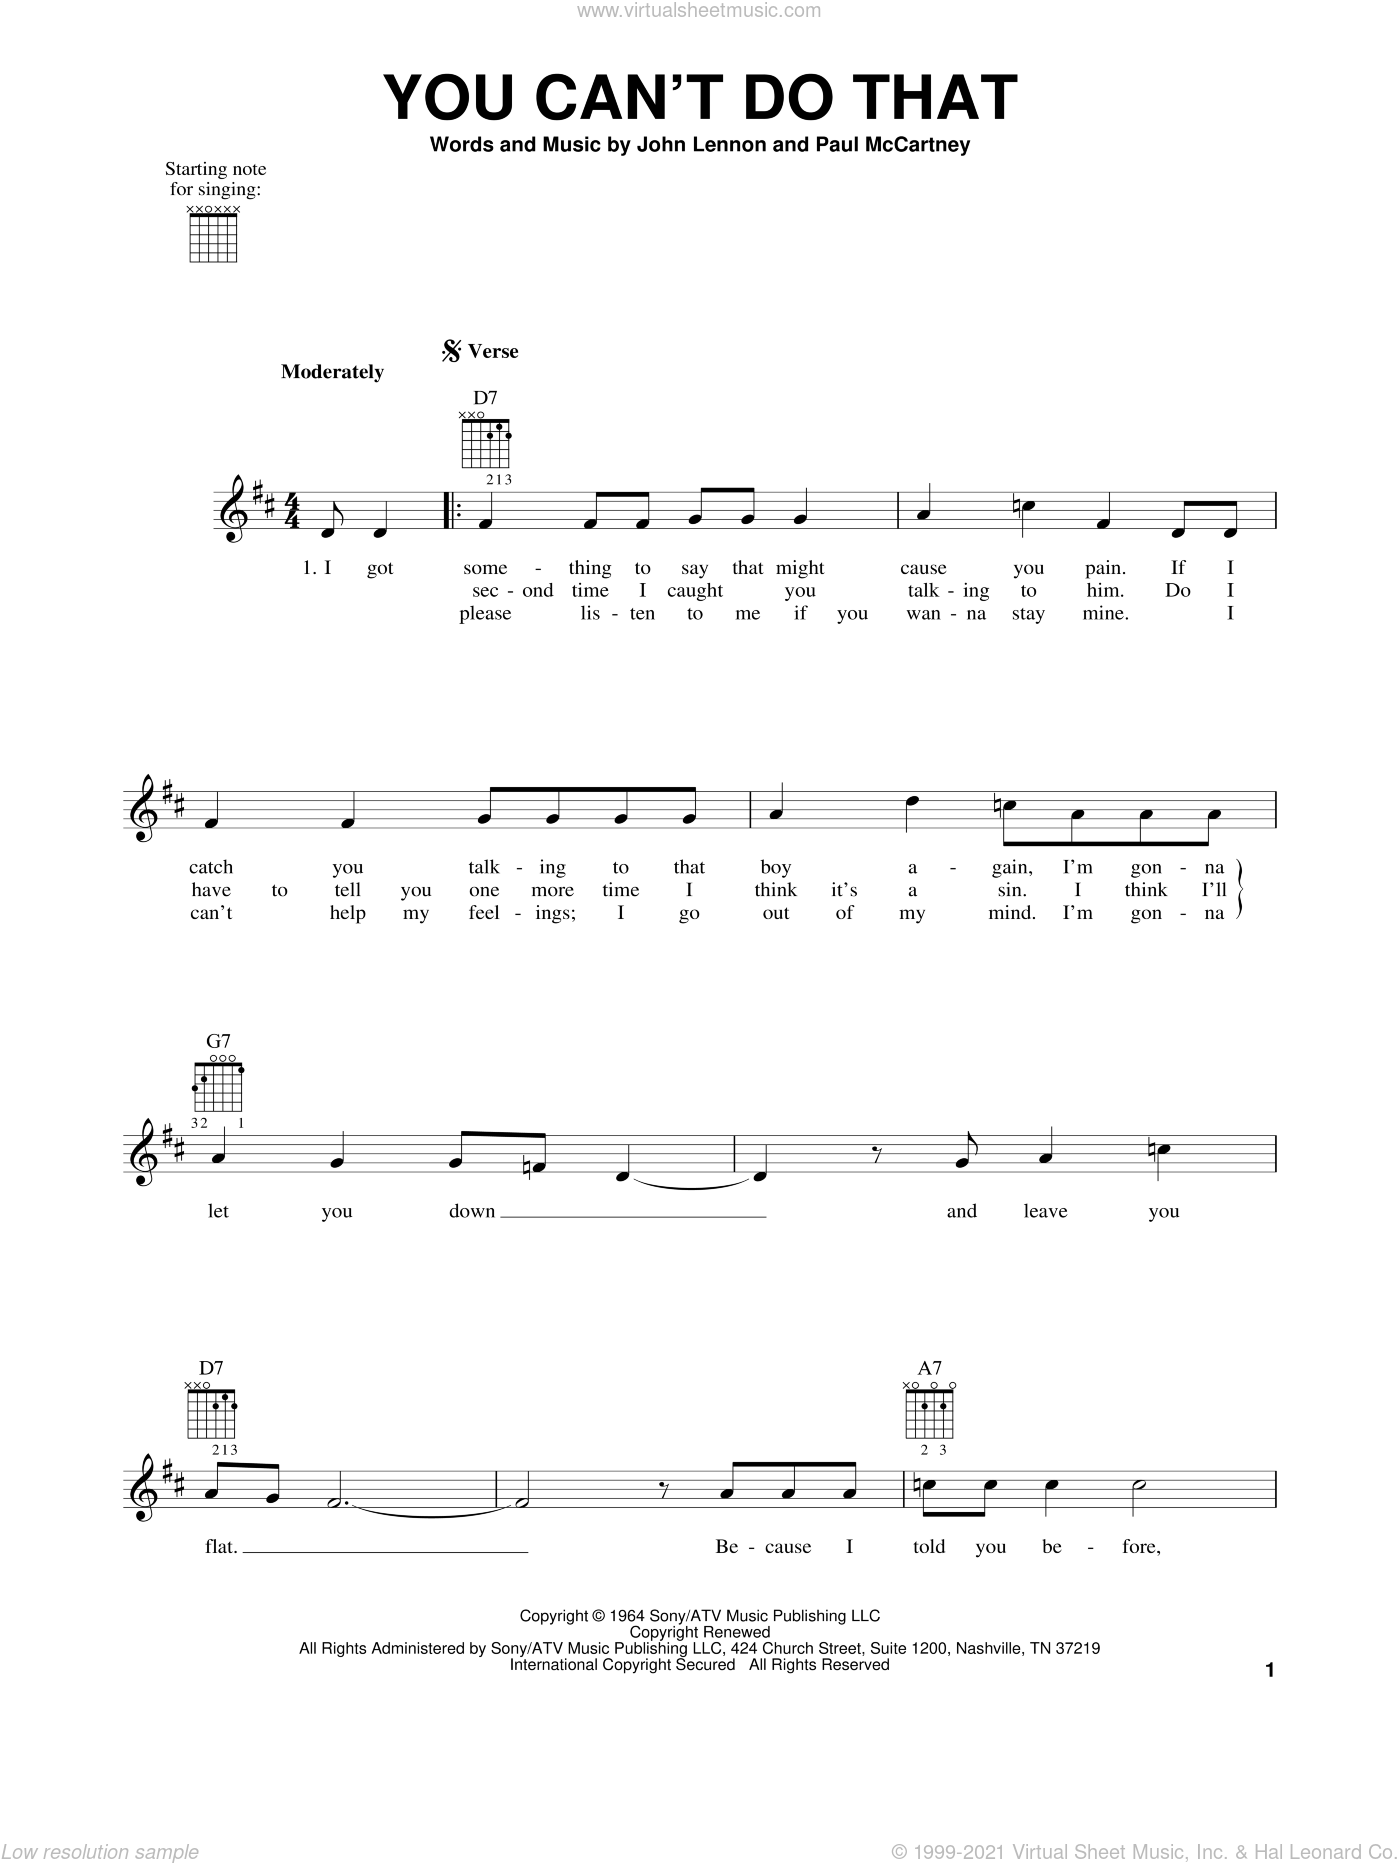 You Can't Do That sheet music for guitar solo (chords) by The Beatles, John Lennon and Paul McCartney. Score Image Preview.